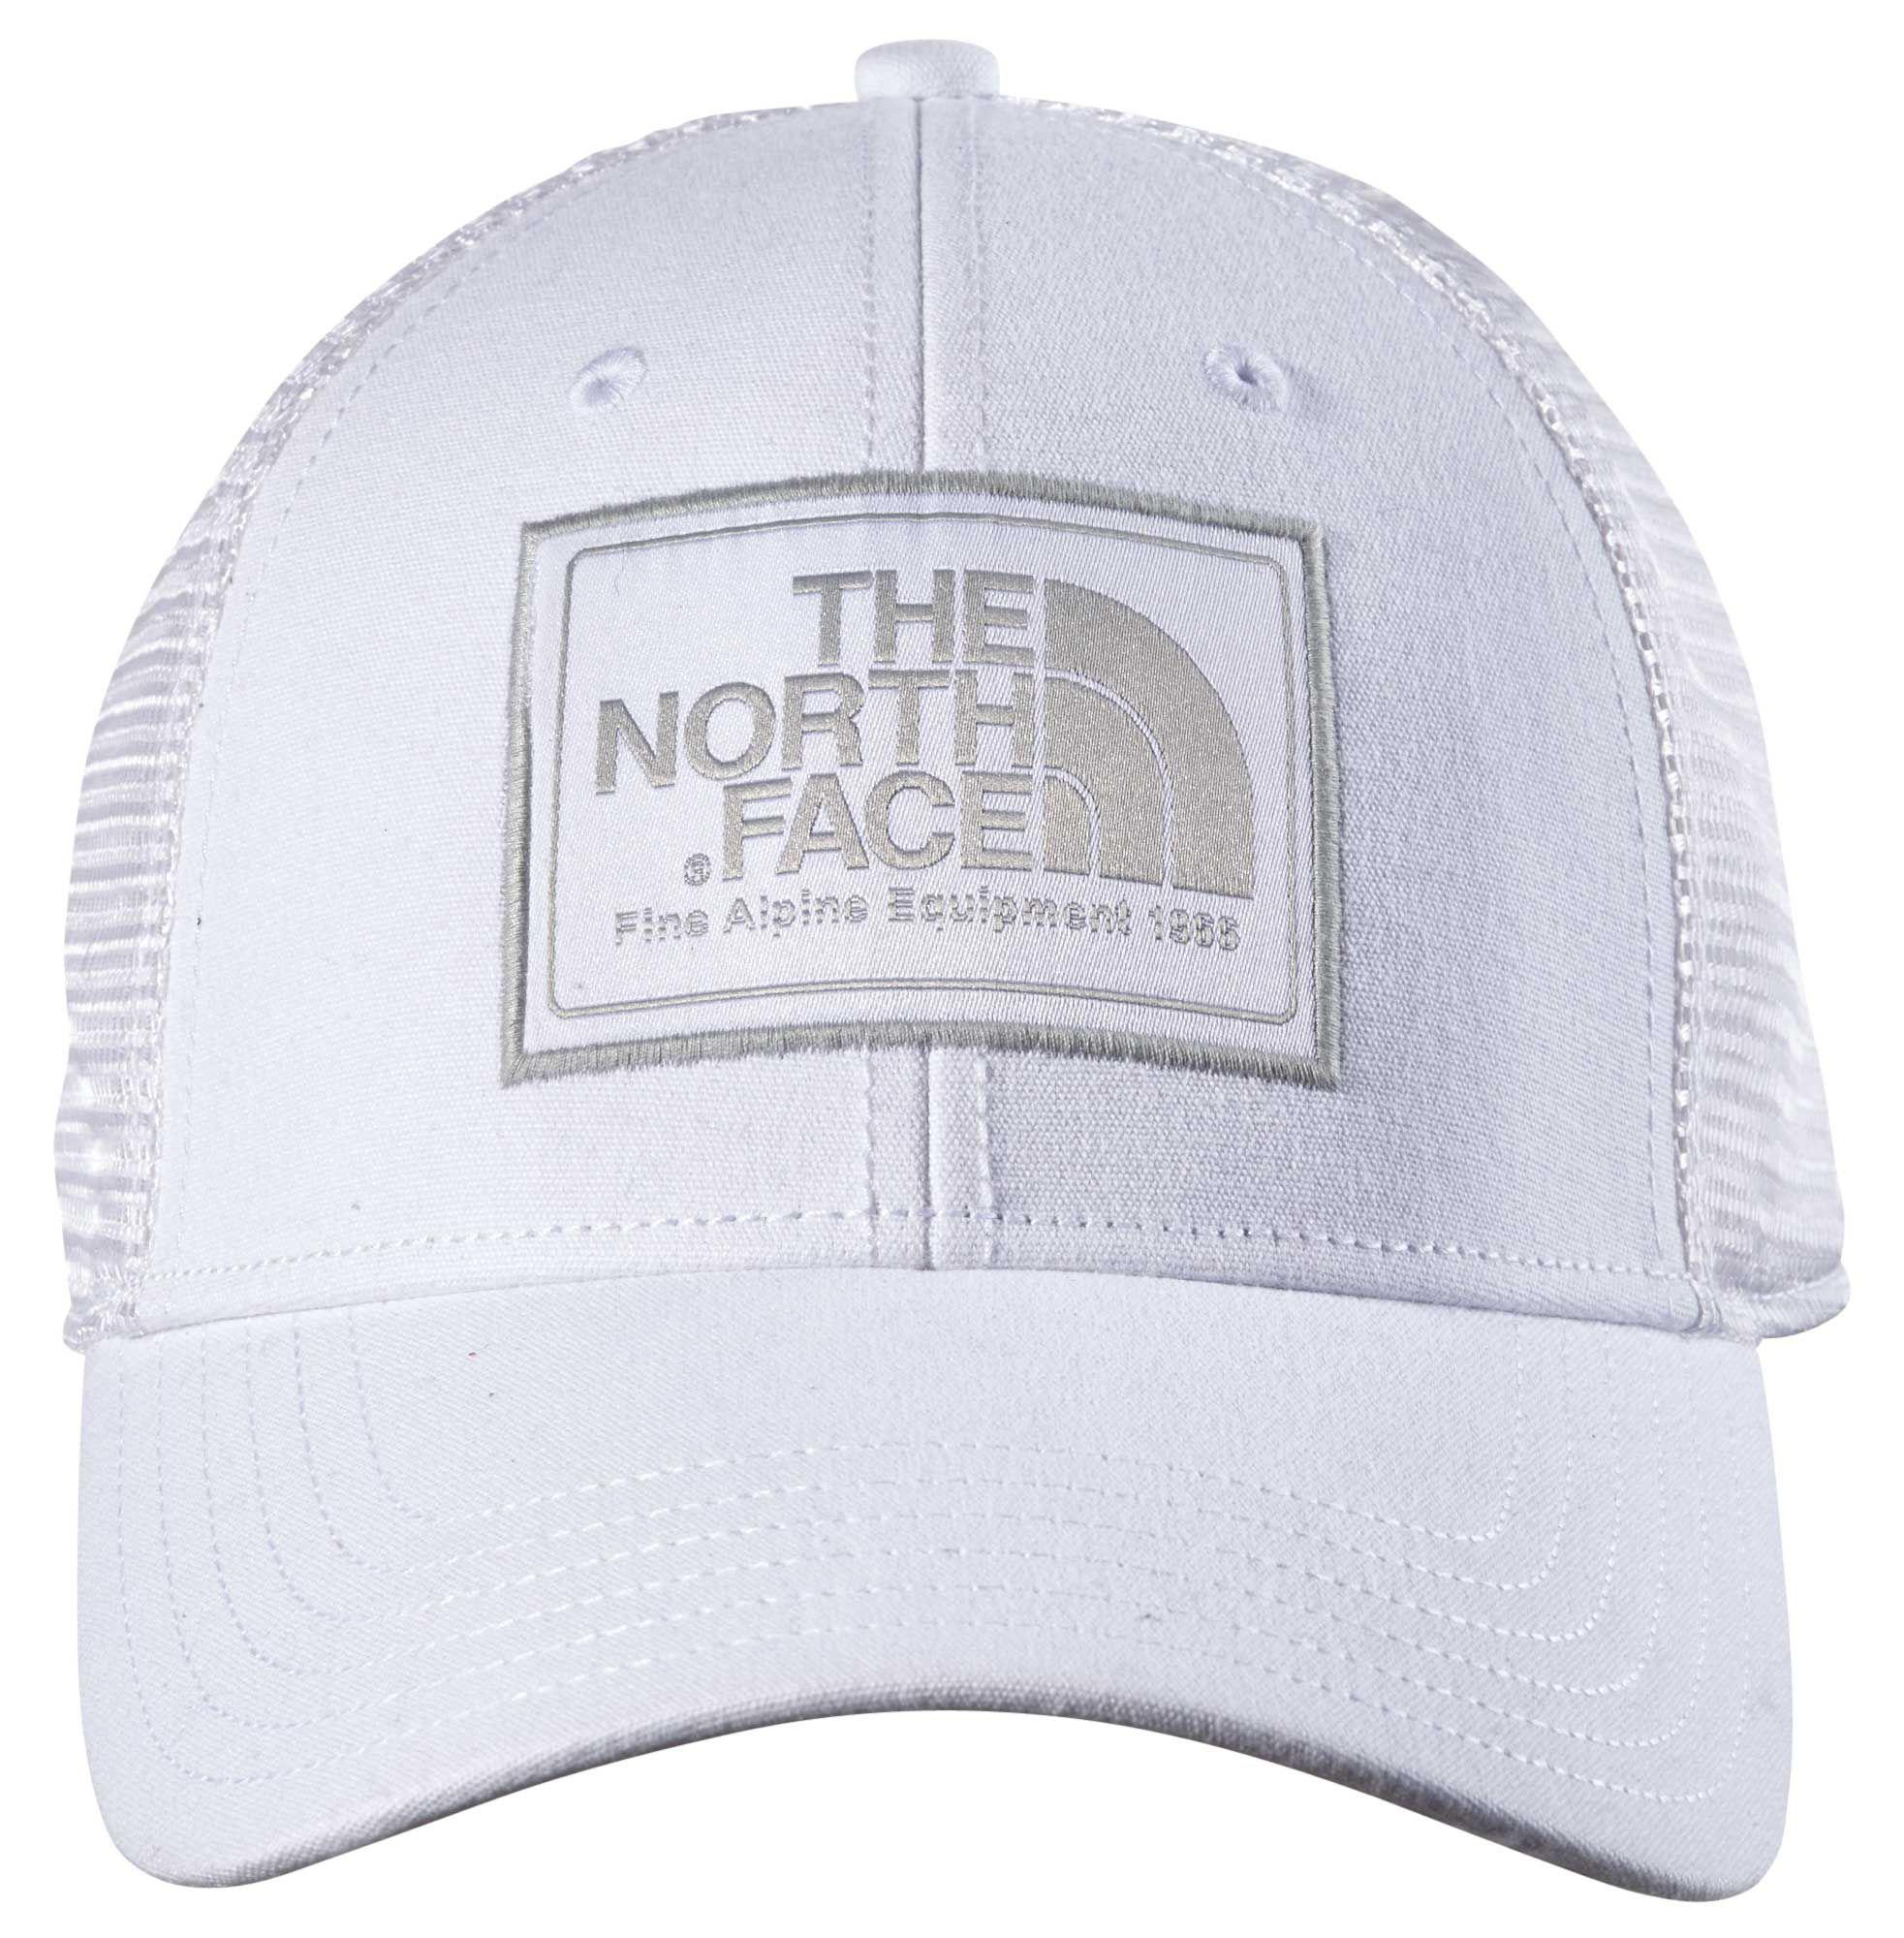 c79daaca8 The North Face White Mudder Trucker Hat for men